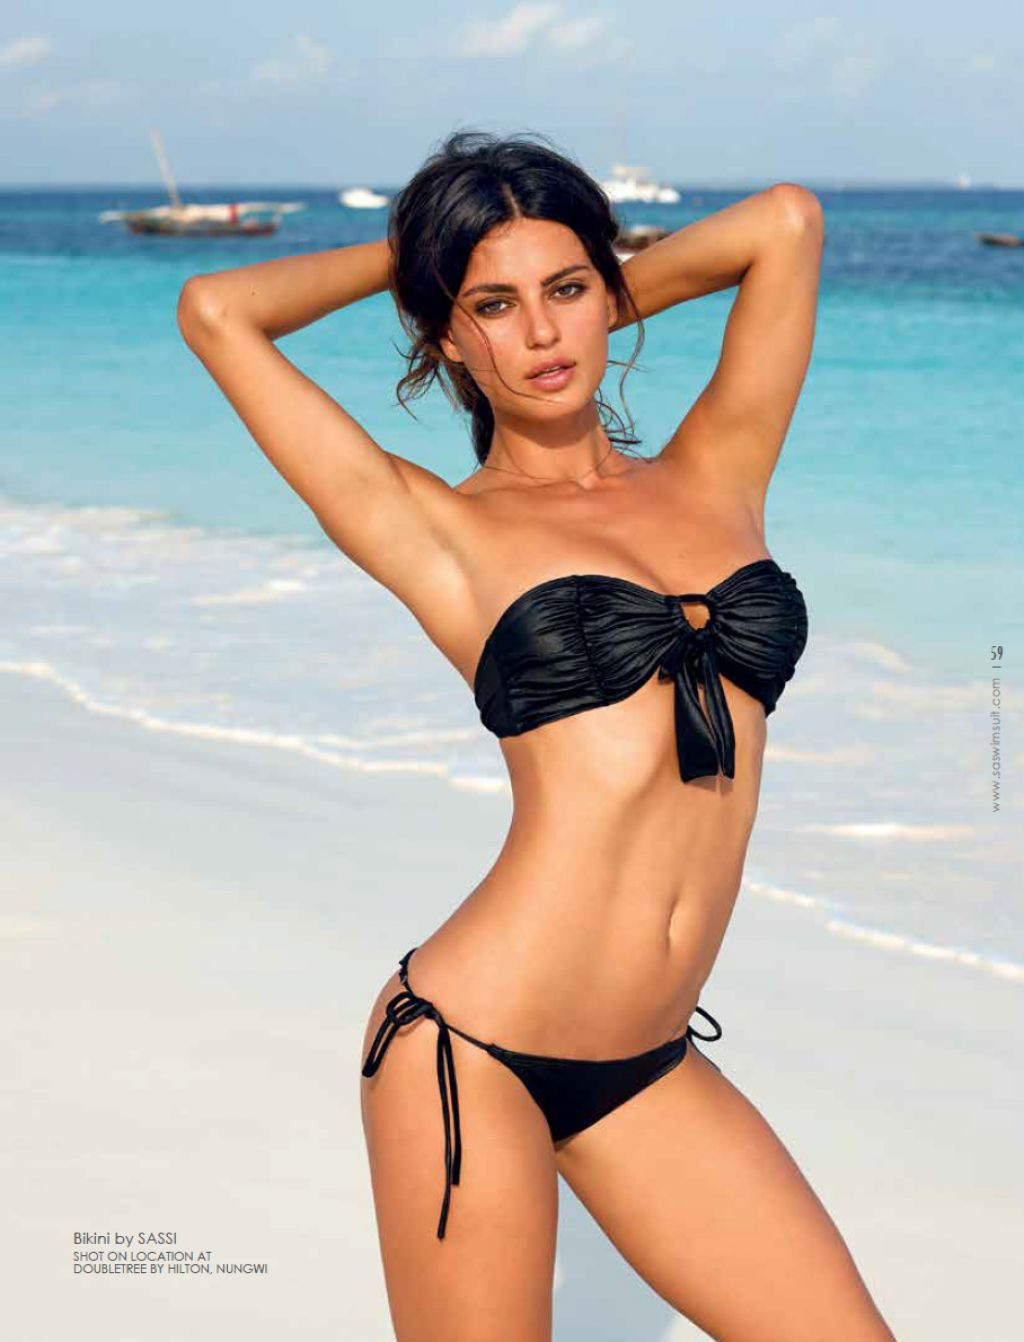 Catrinel Menghia Bikini Photoshoot - South African Swimsuit 2013